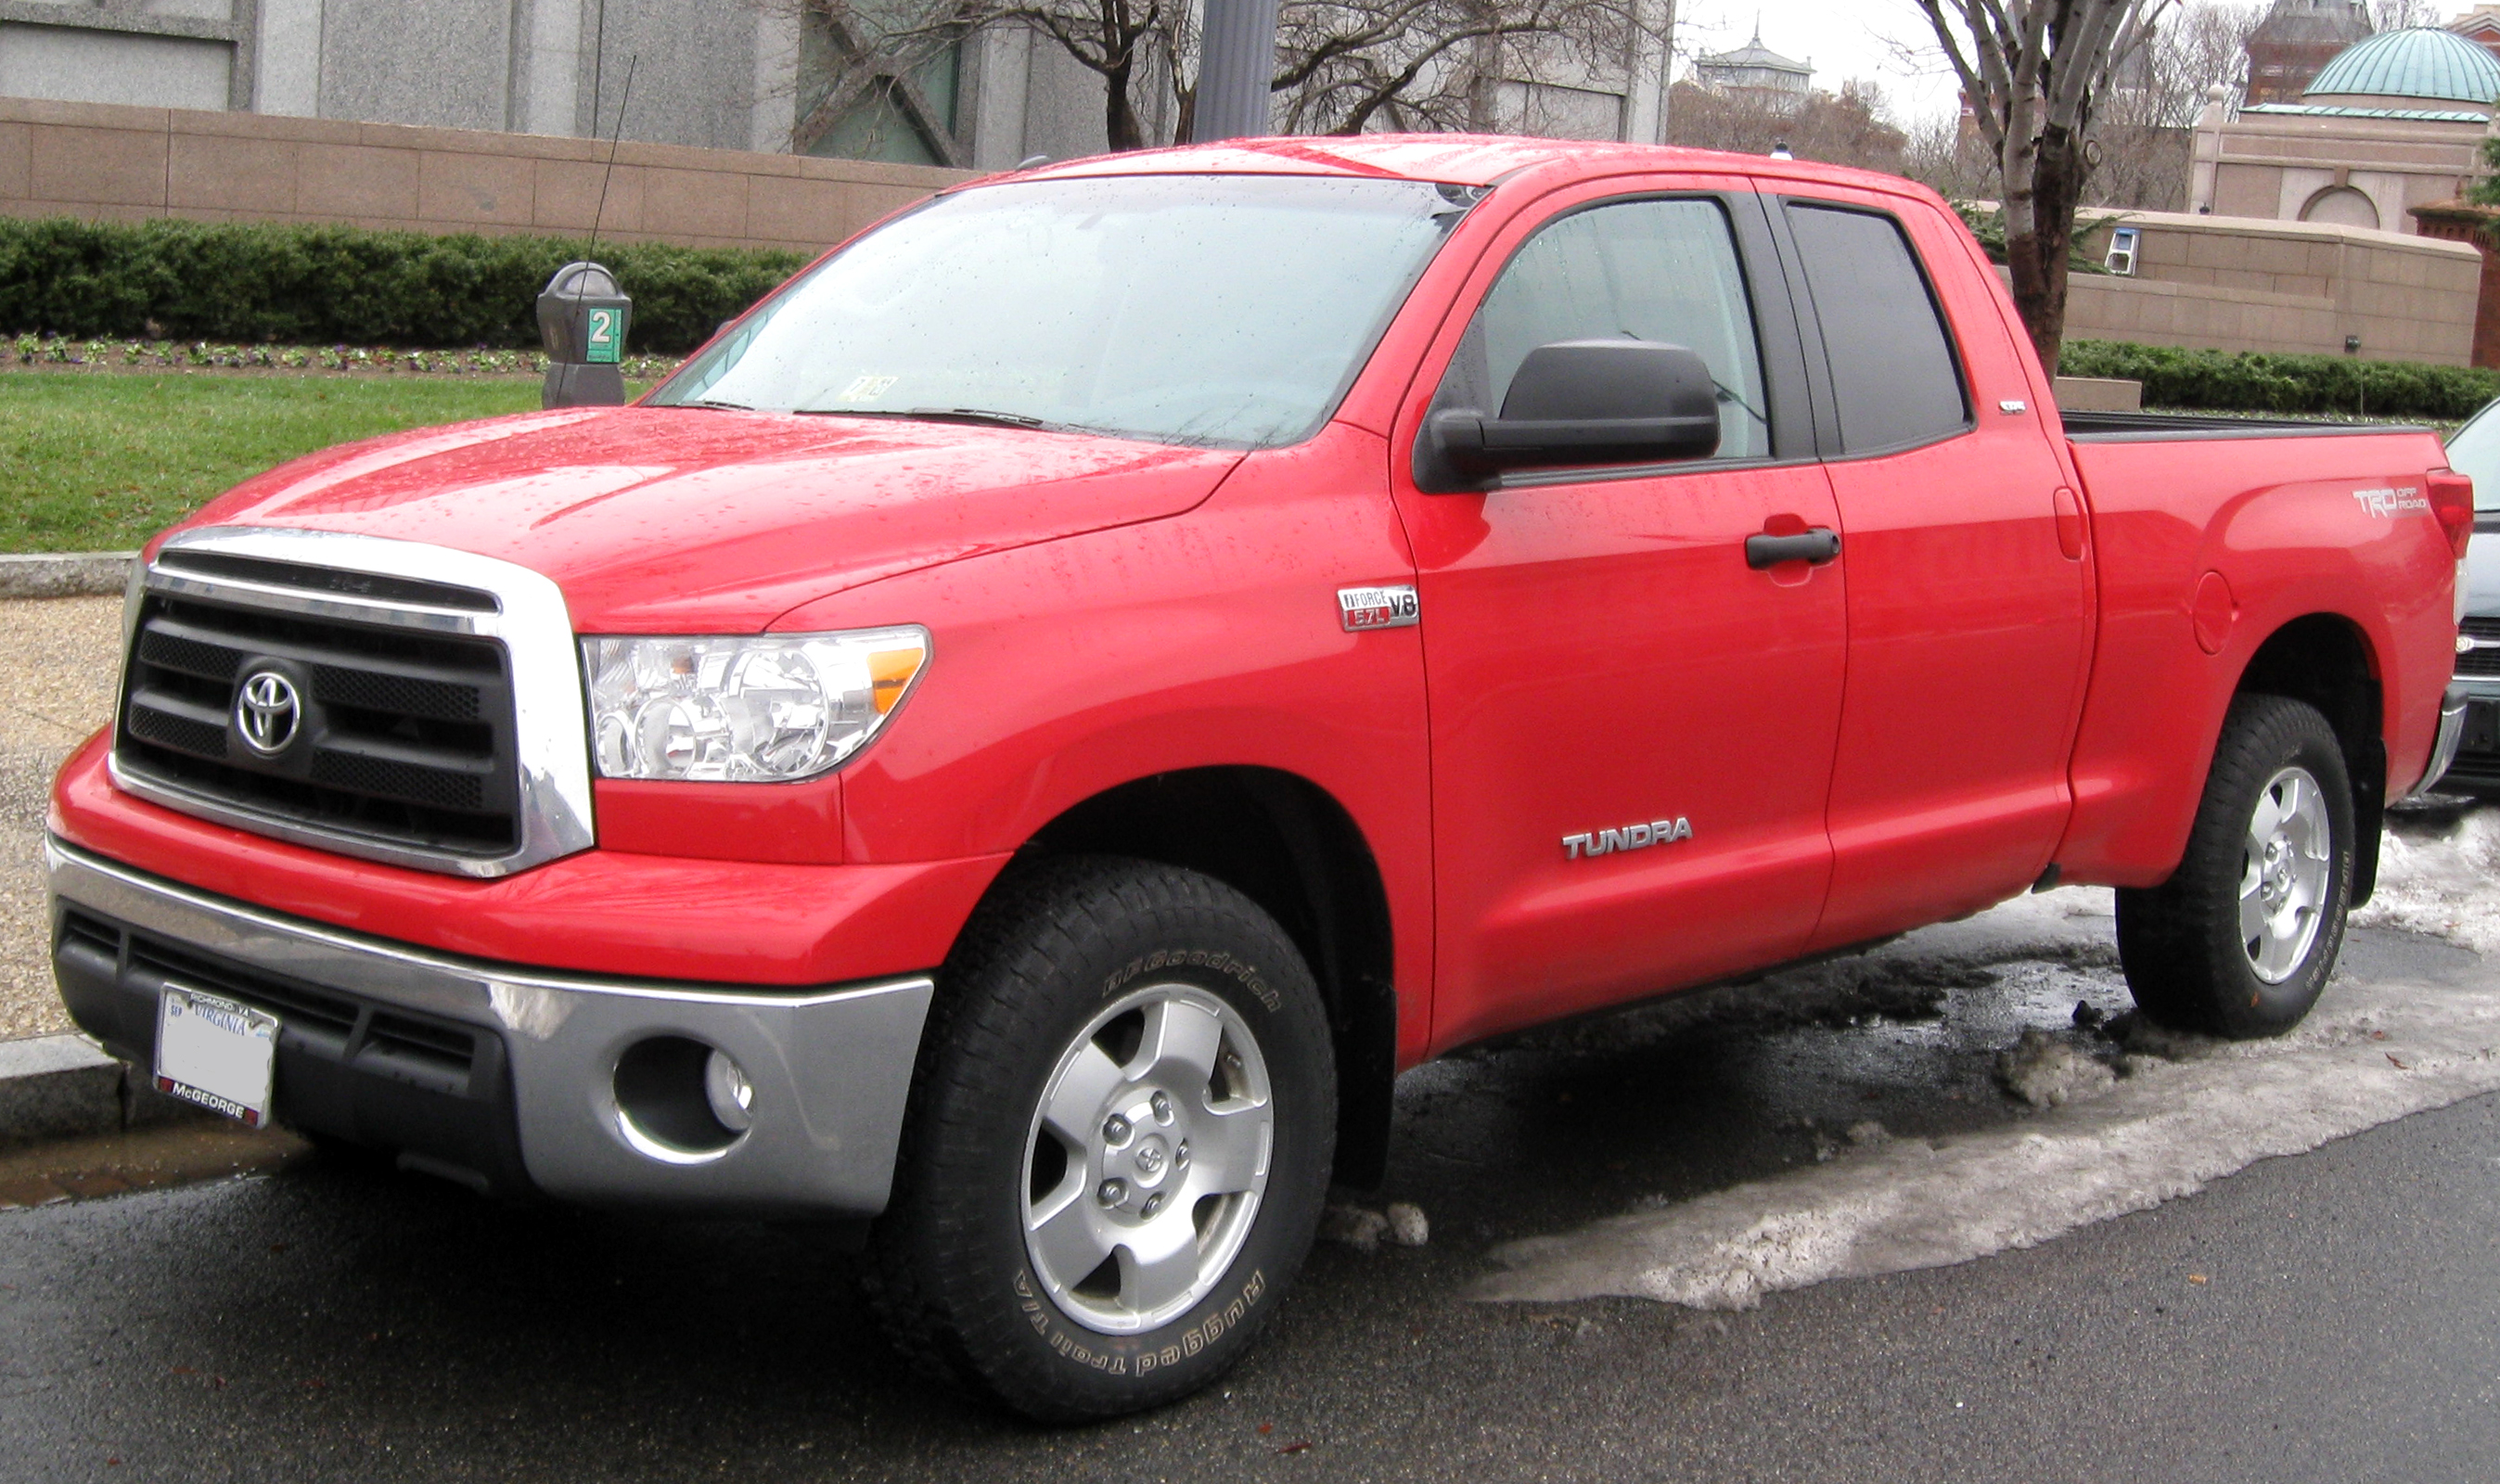 Description Toyota Tundra SR5 Double Cab -- 12-26-2009.jpg